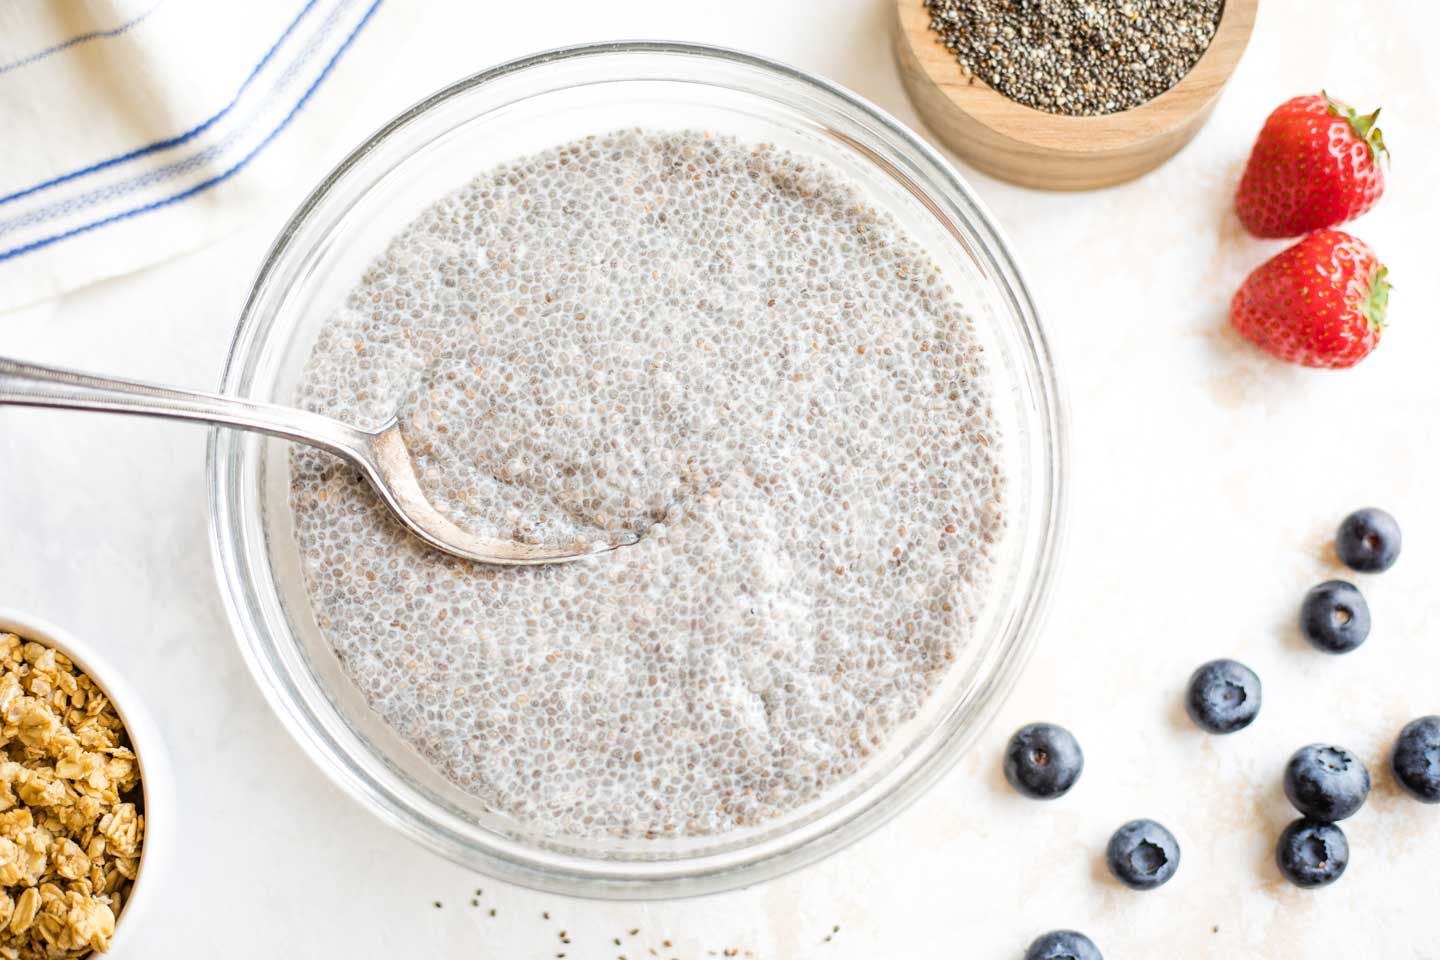 Set chia pudding after overnight refrigeration, with mix-ins like berries and granola nearby.